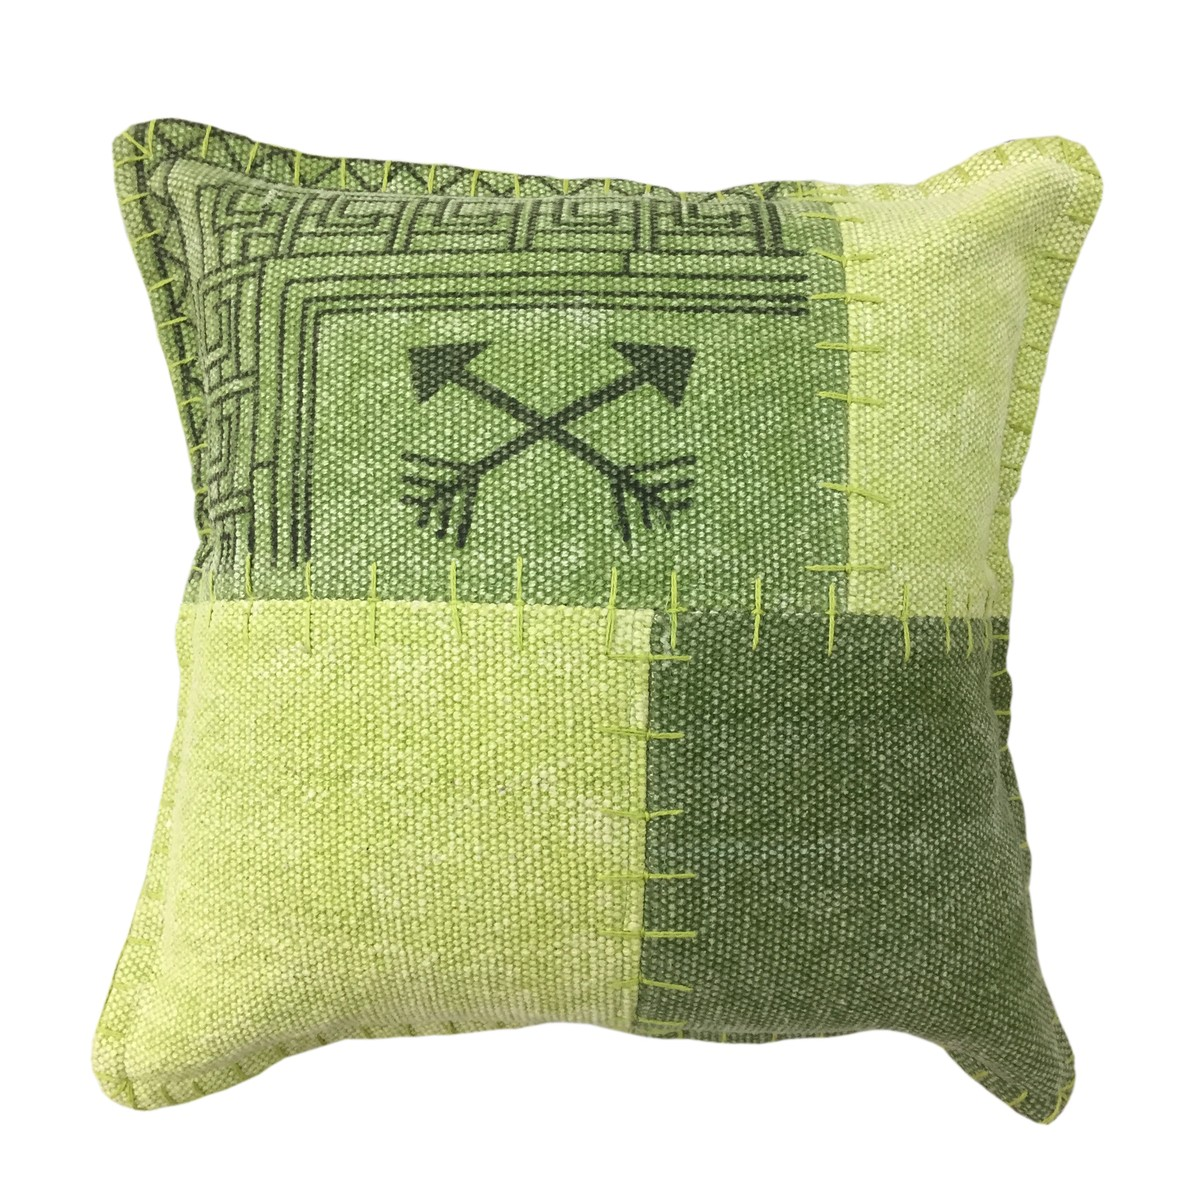 Vintage Finca Square Patchwork Cushion Handmade Green Amp Story 6122